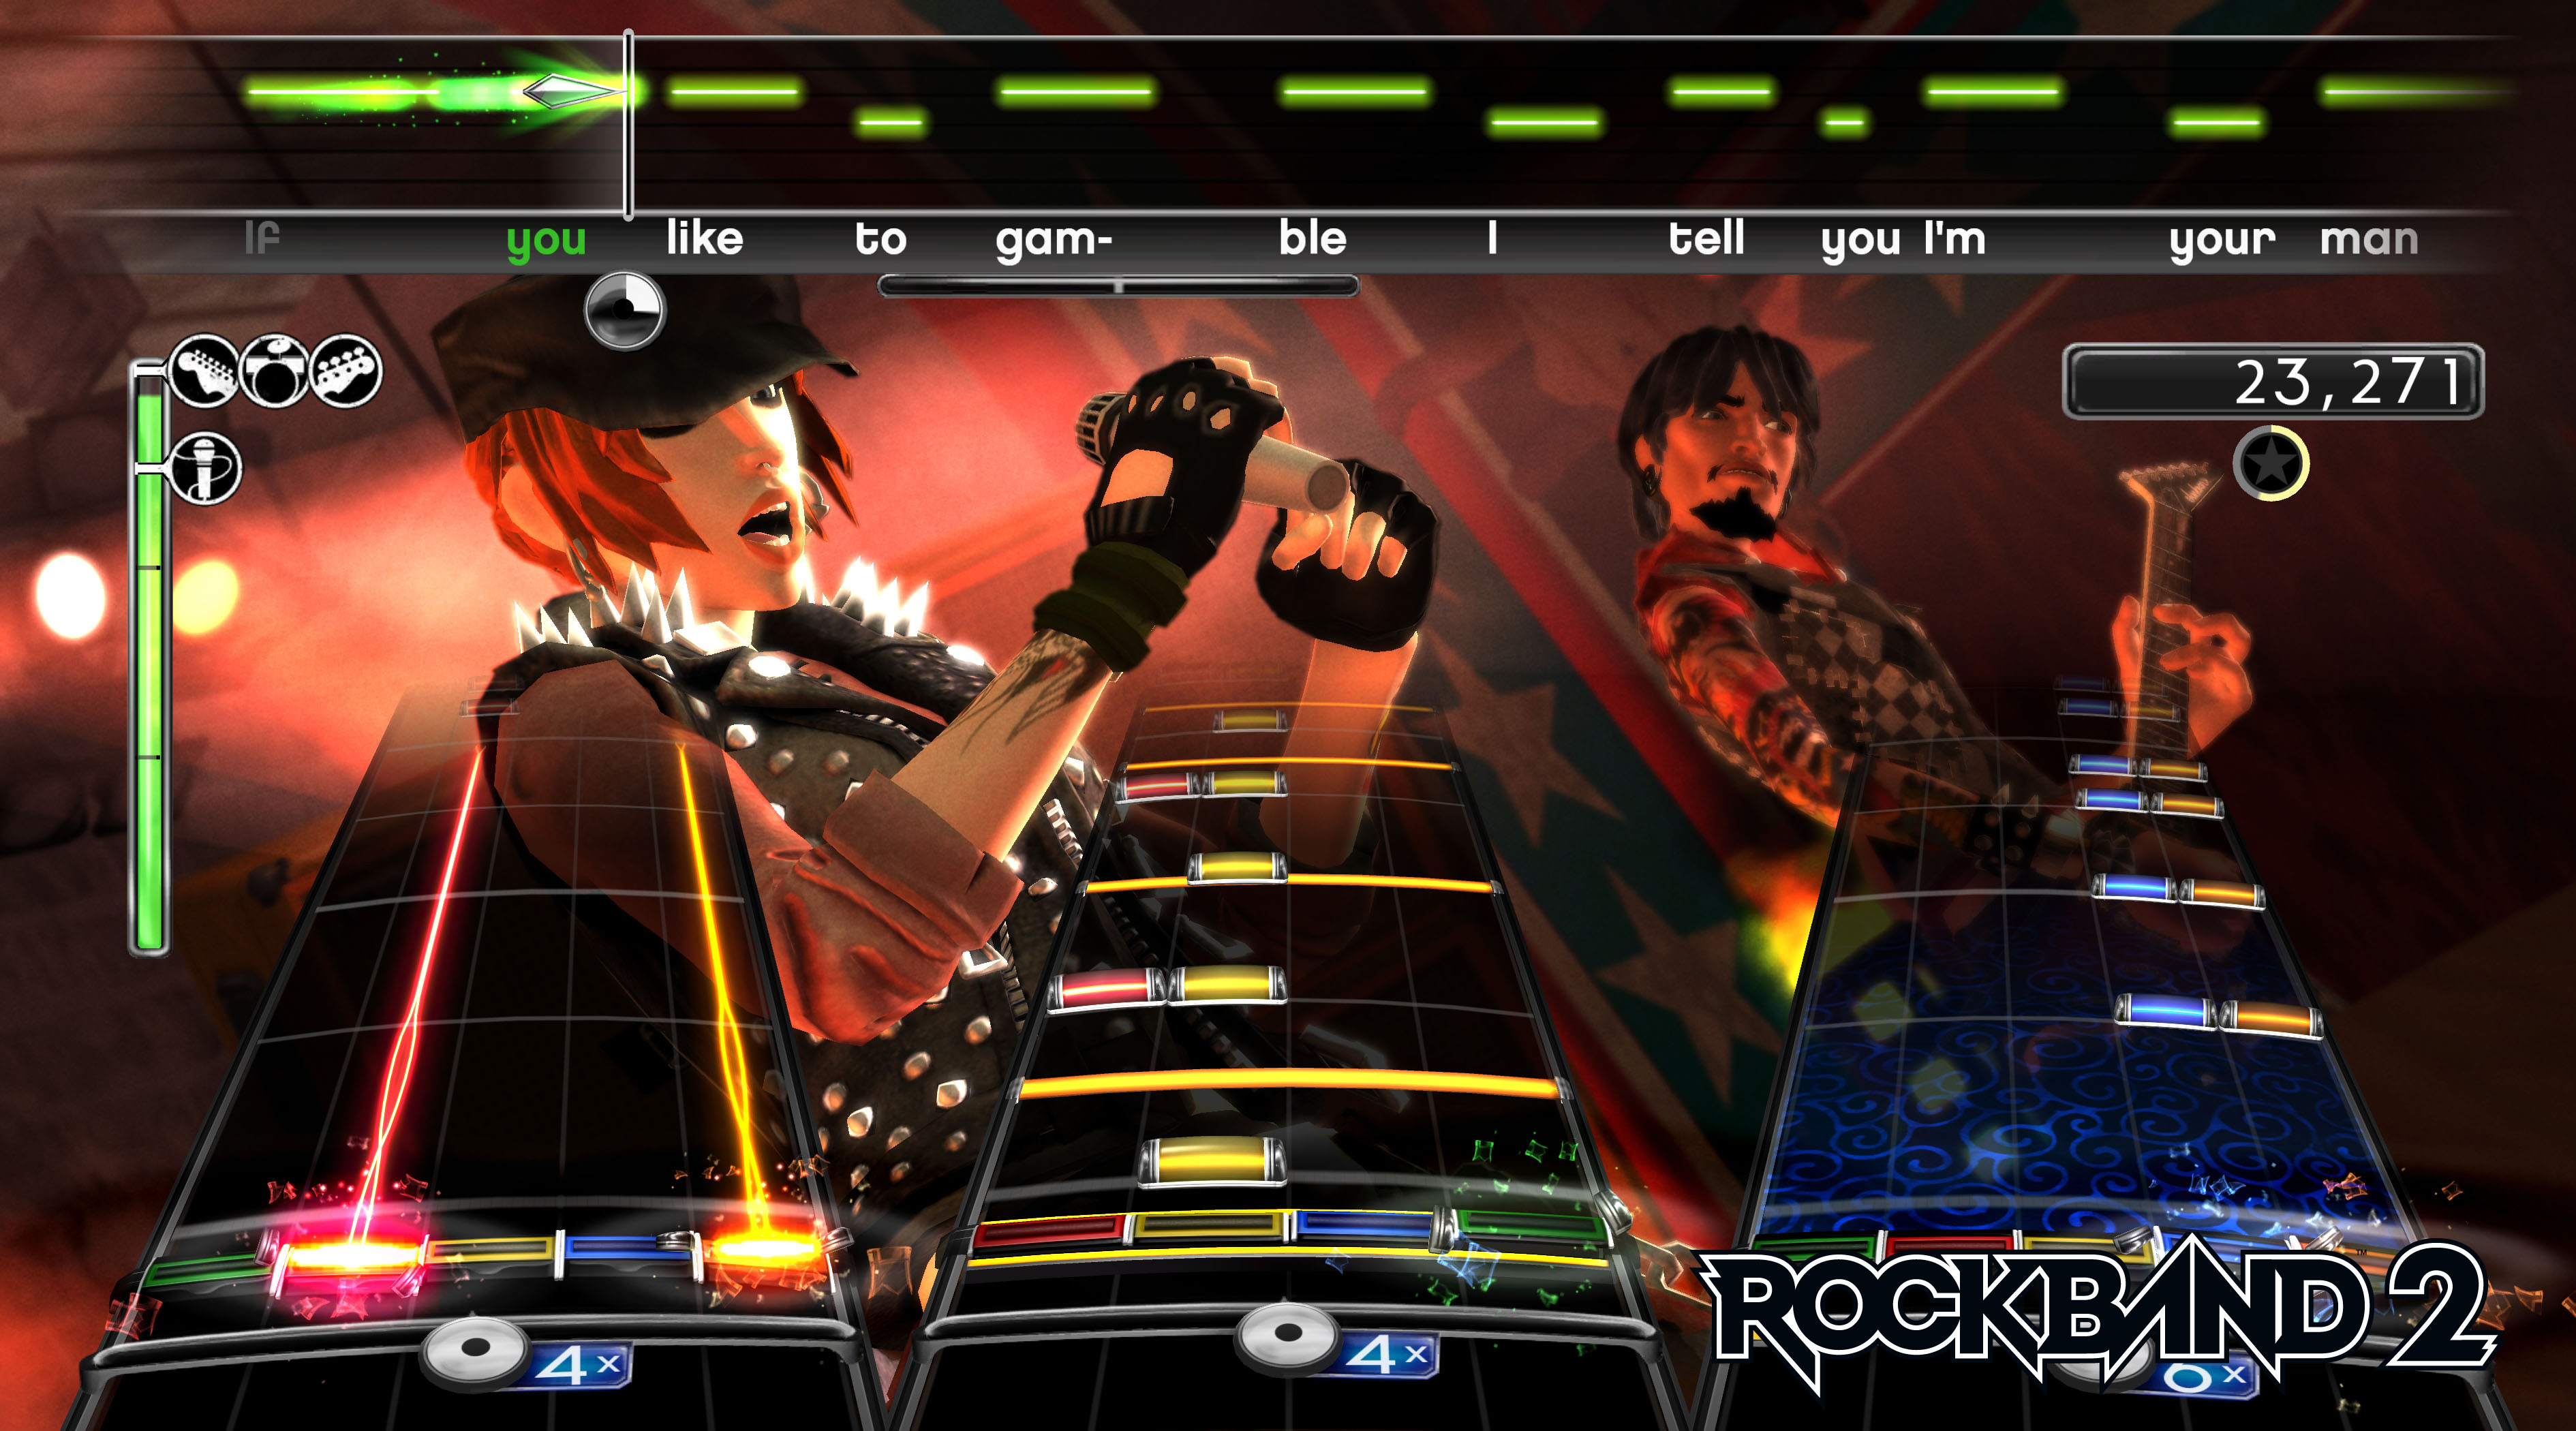 Rock Band is reportedly being revived on PS4 and Xbox One | BGR